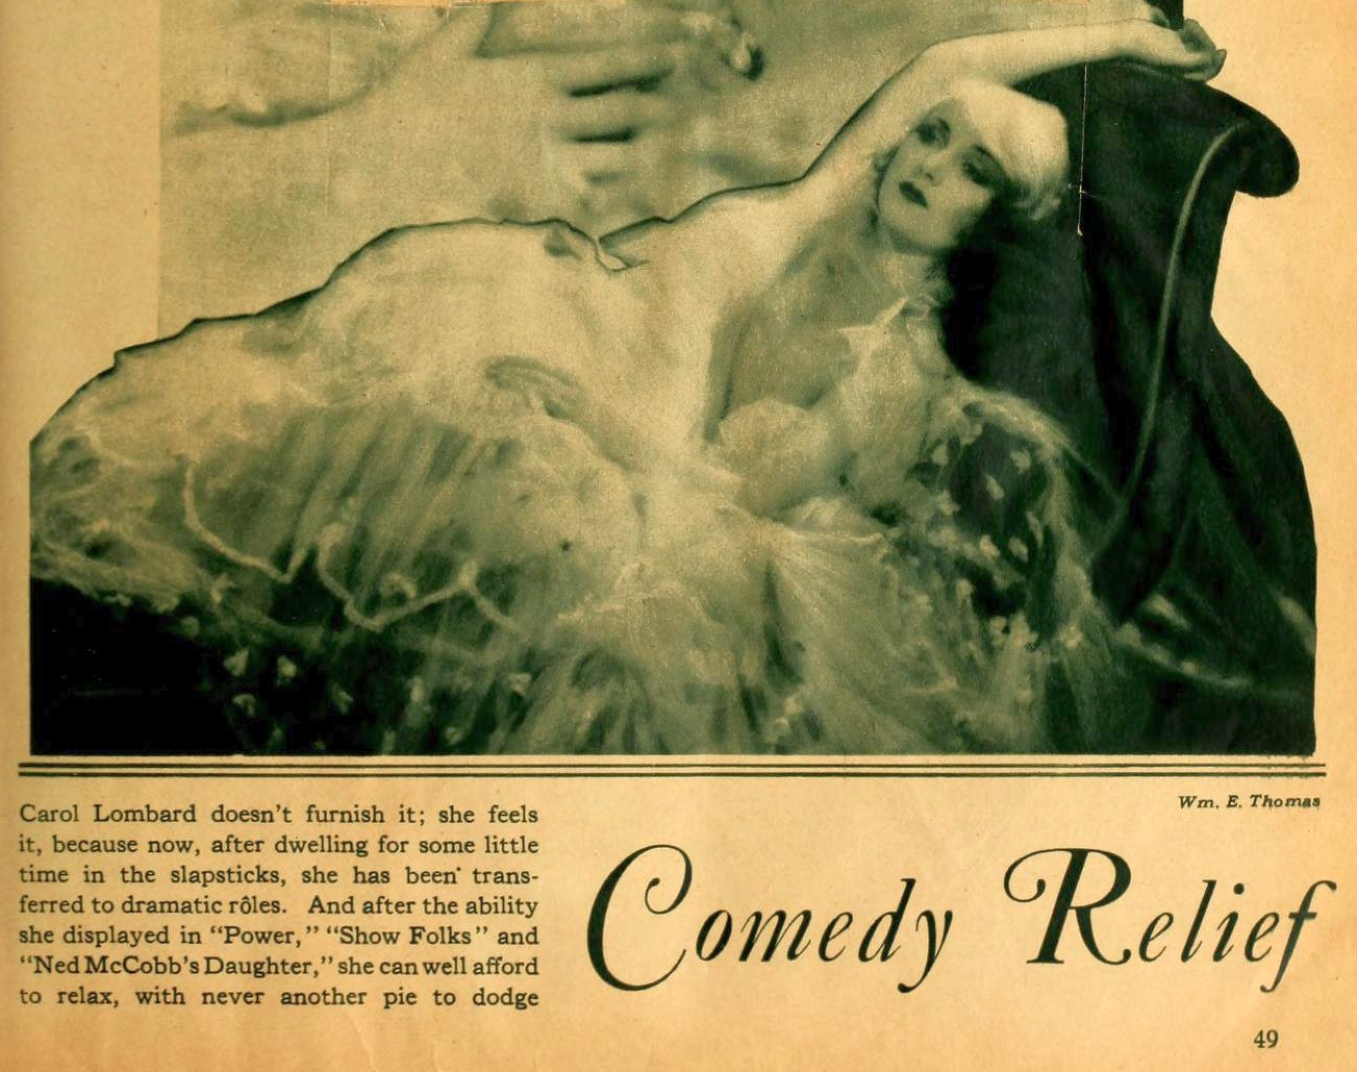 carole lombard motion picture march 1929 larger bottom